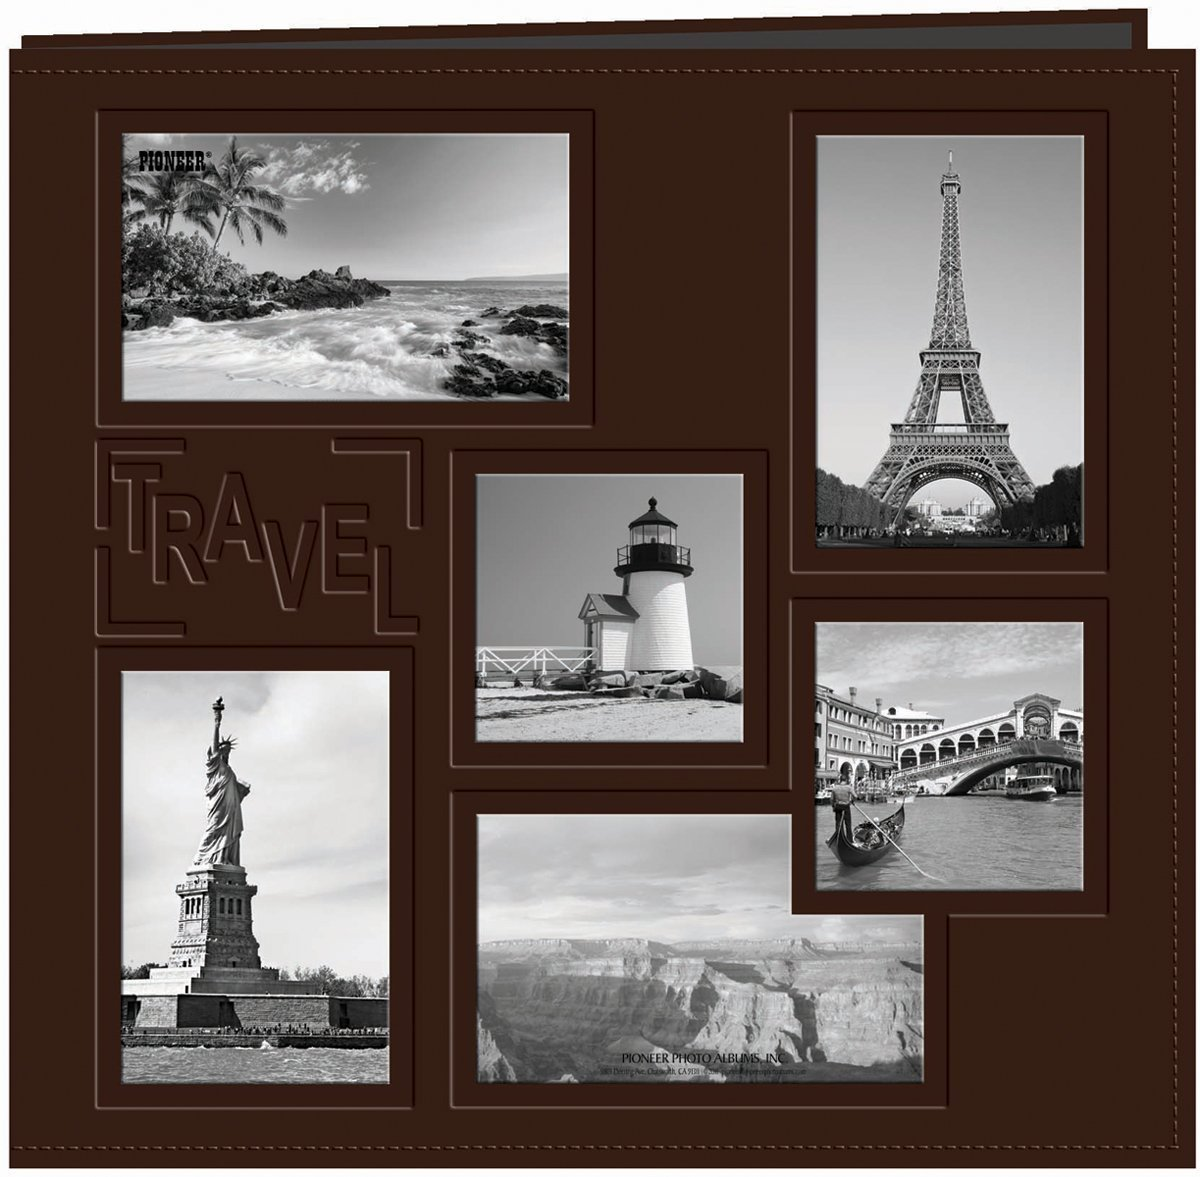 Photo book gift ideas for travelers